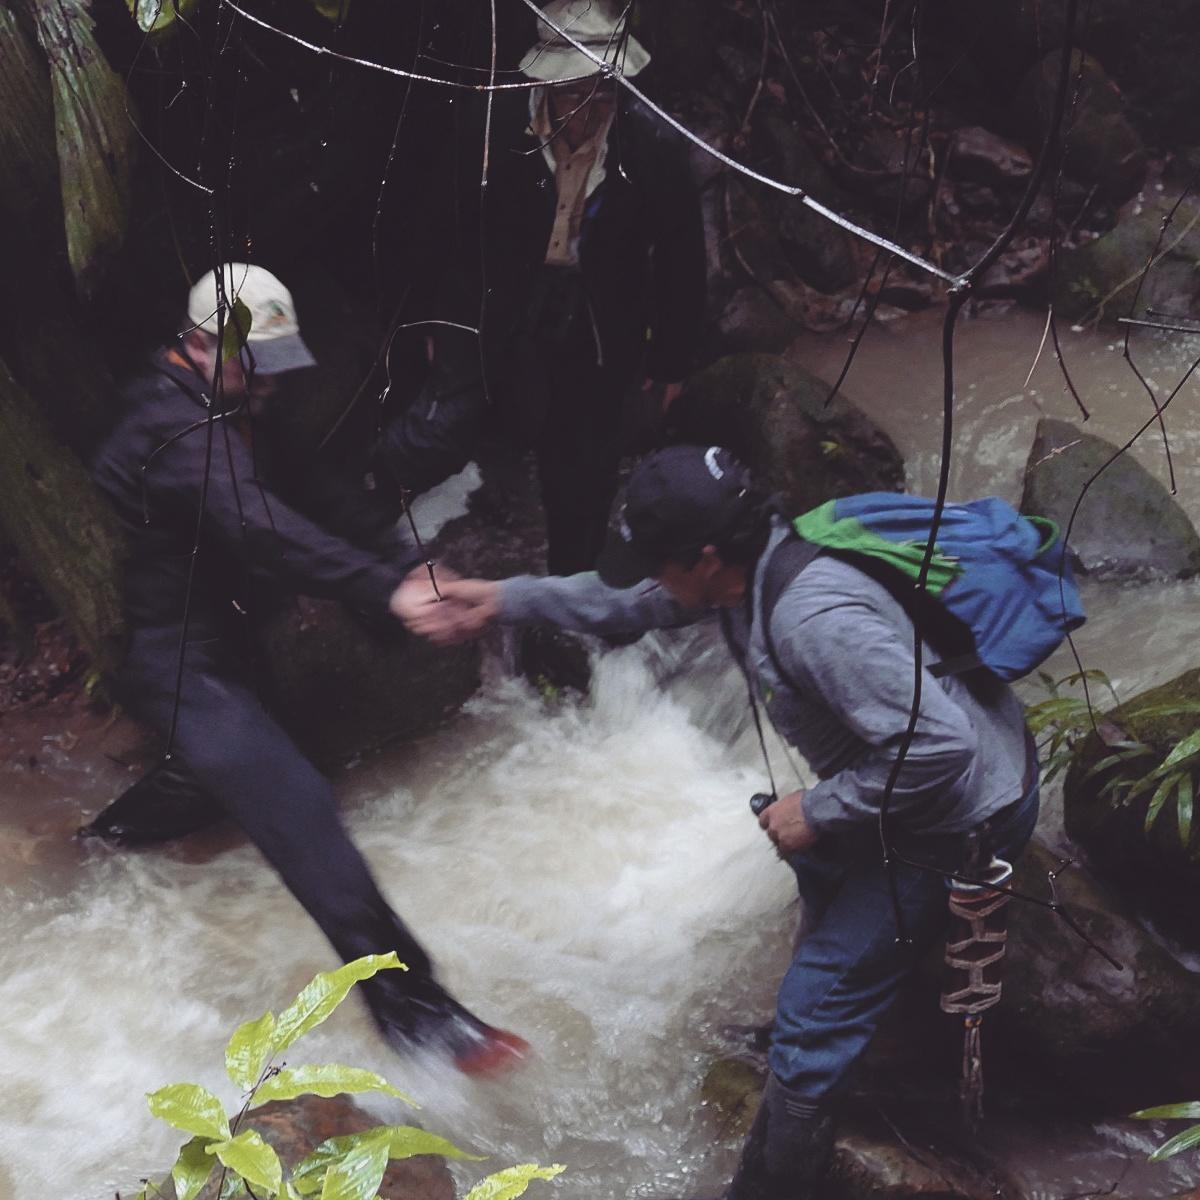 Arturo helps Jim cross a stream while Bruce supervises, Colombia. Noah Strycker